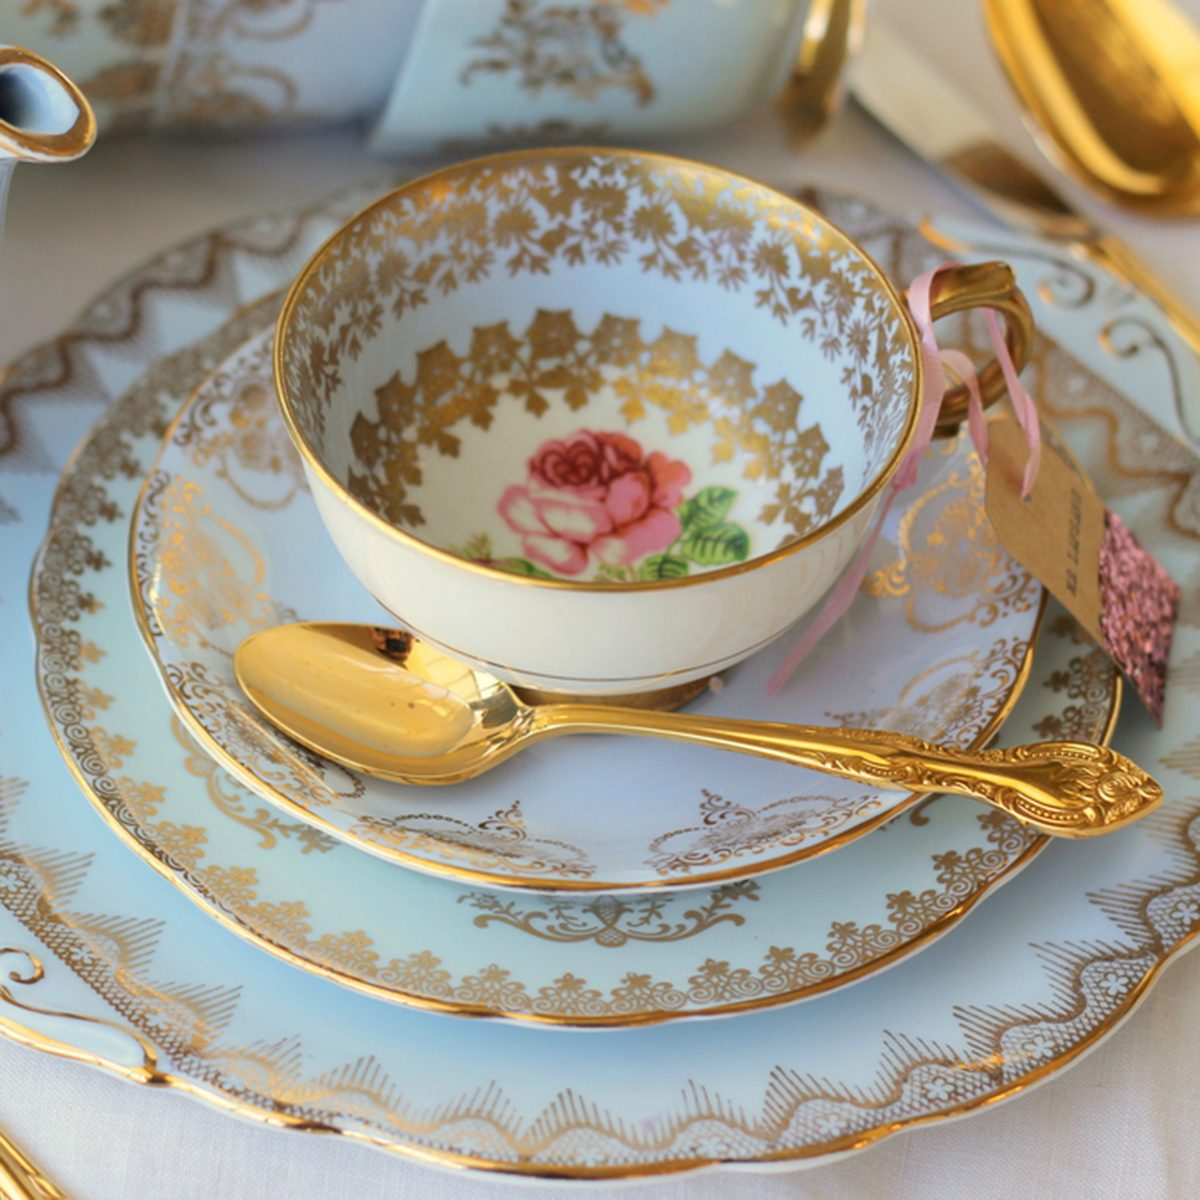 Vintage blue dinner plates, with pink rose tea cup and gold cutlery